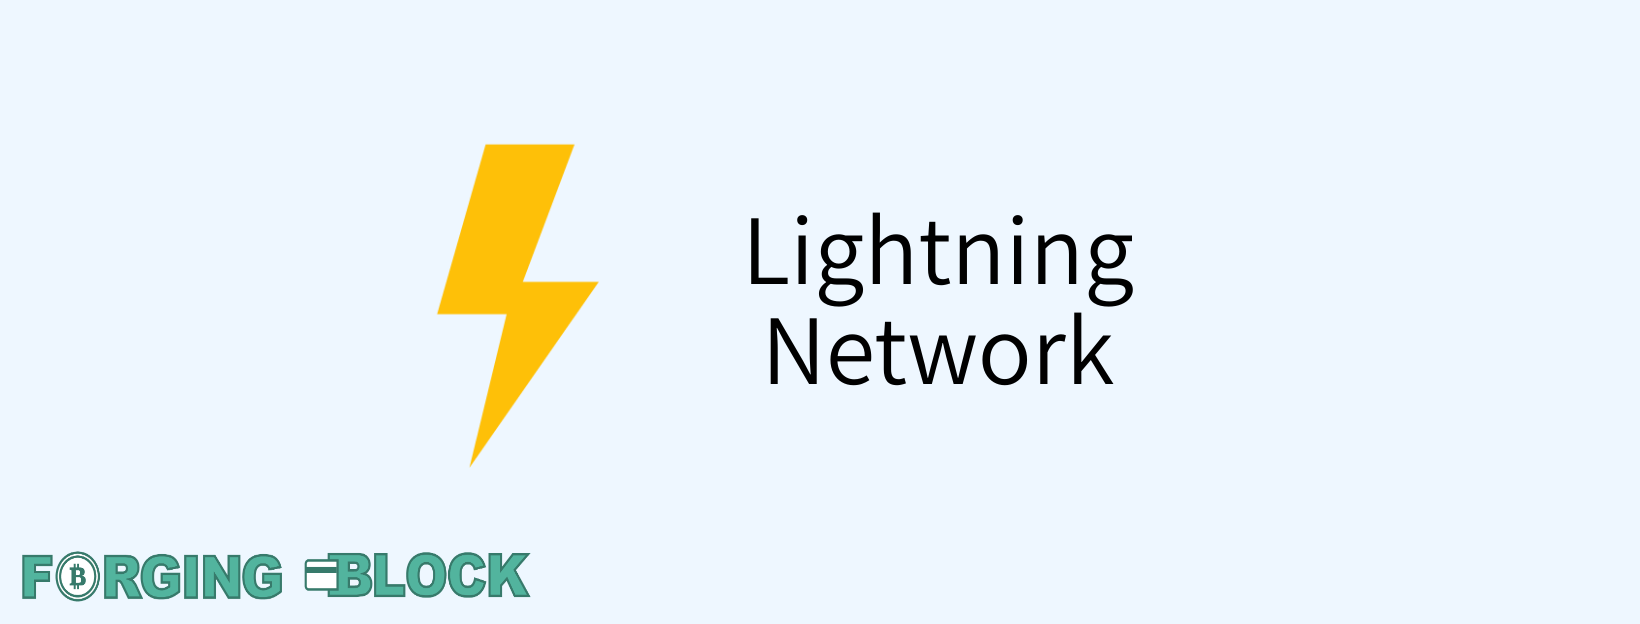 ForgingBlock Lightning Network1